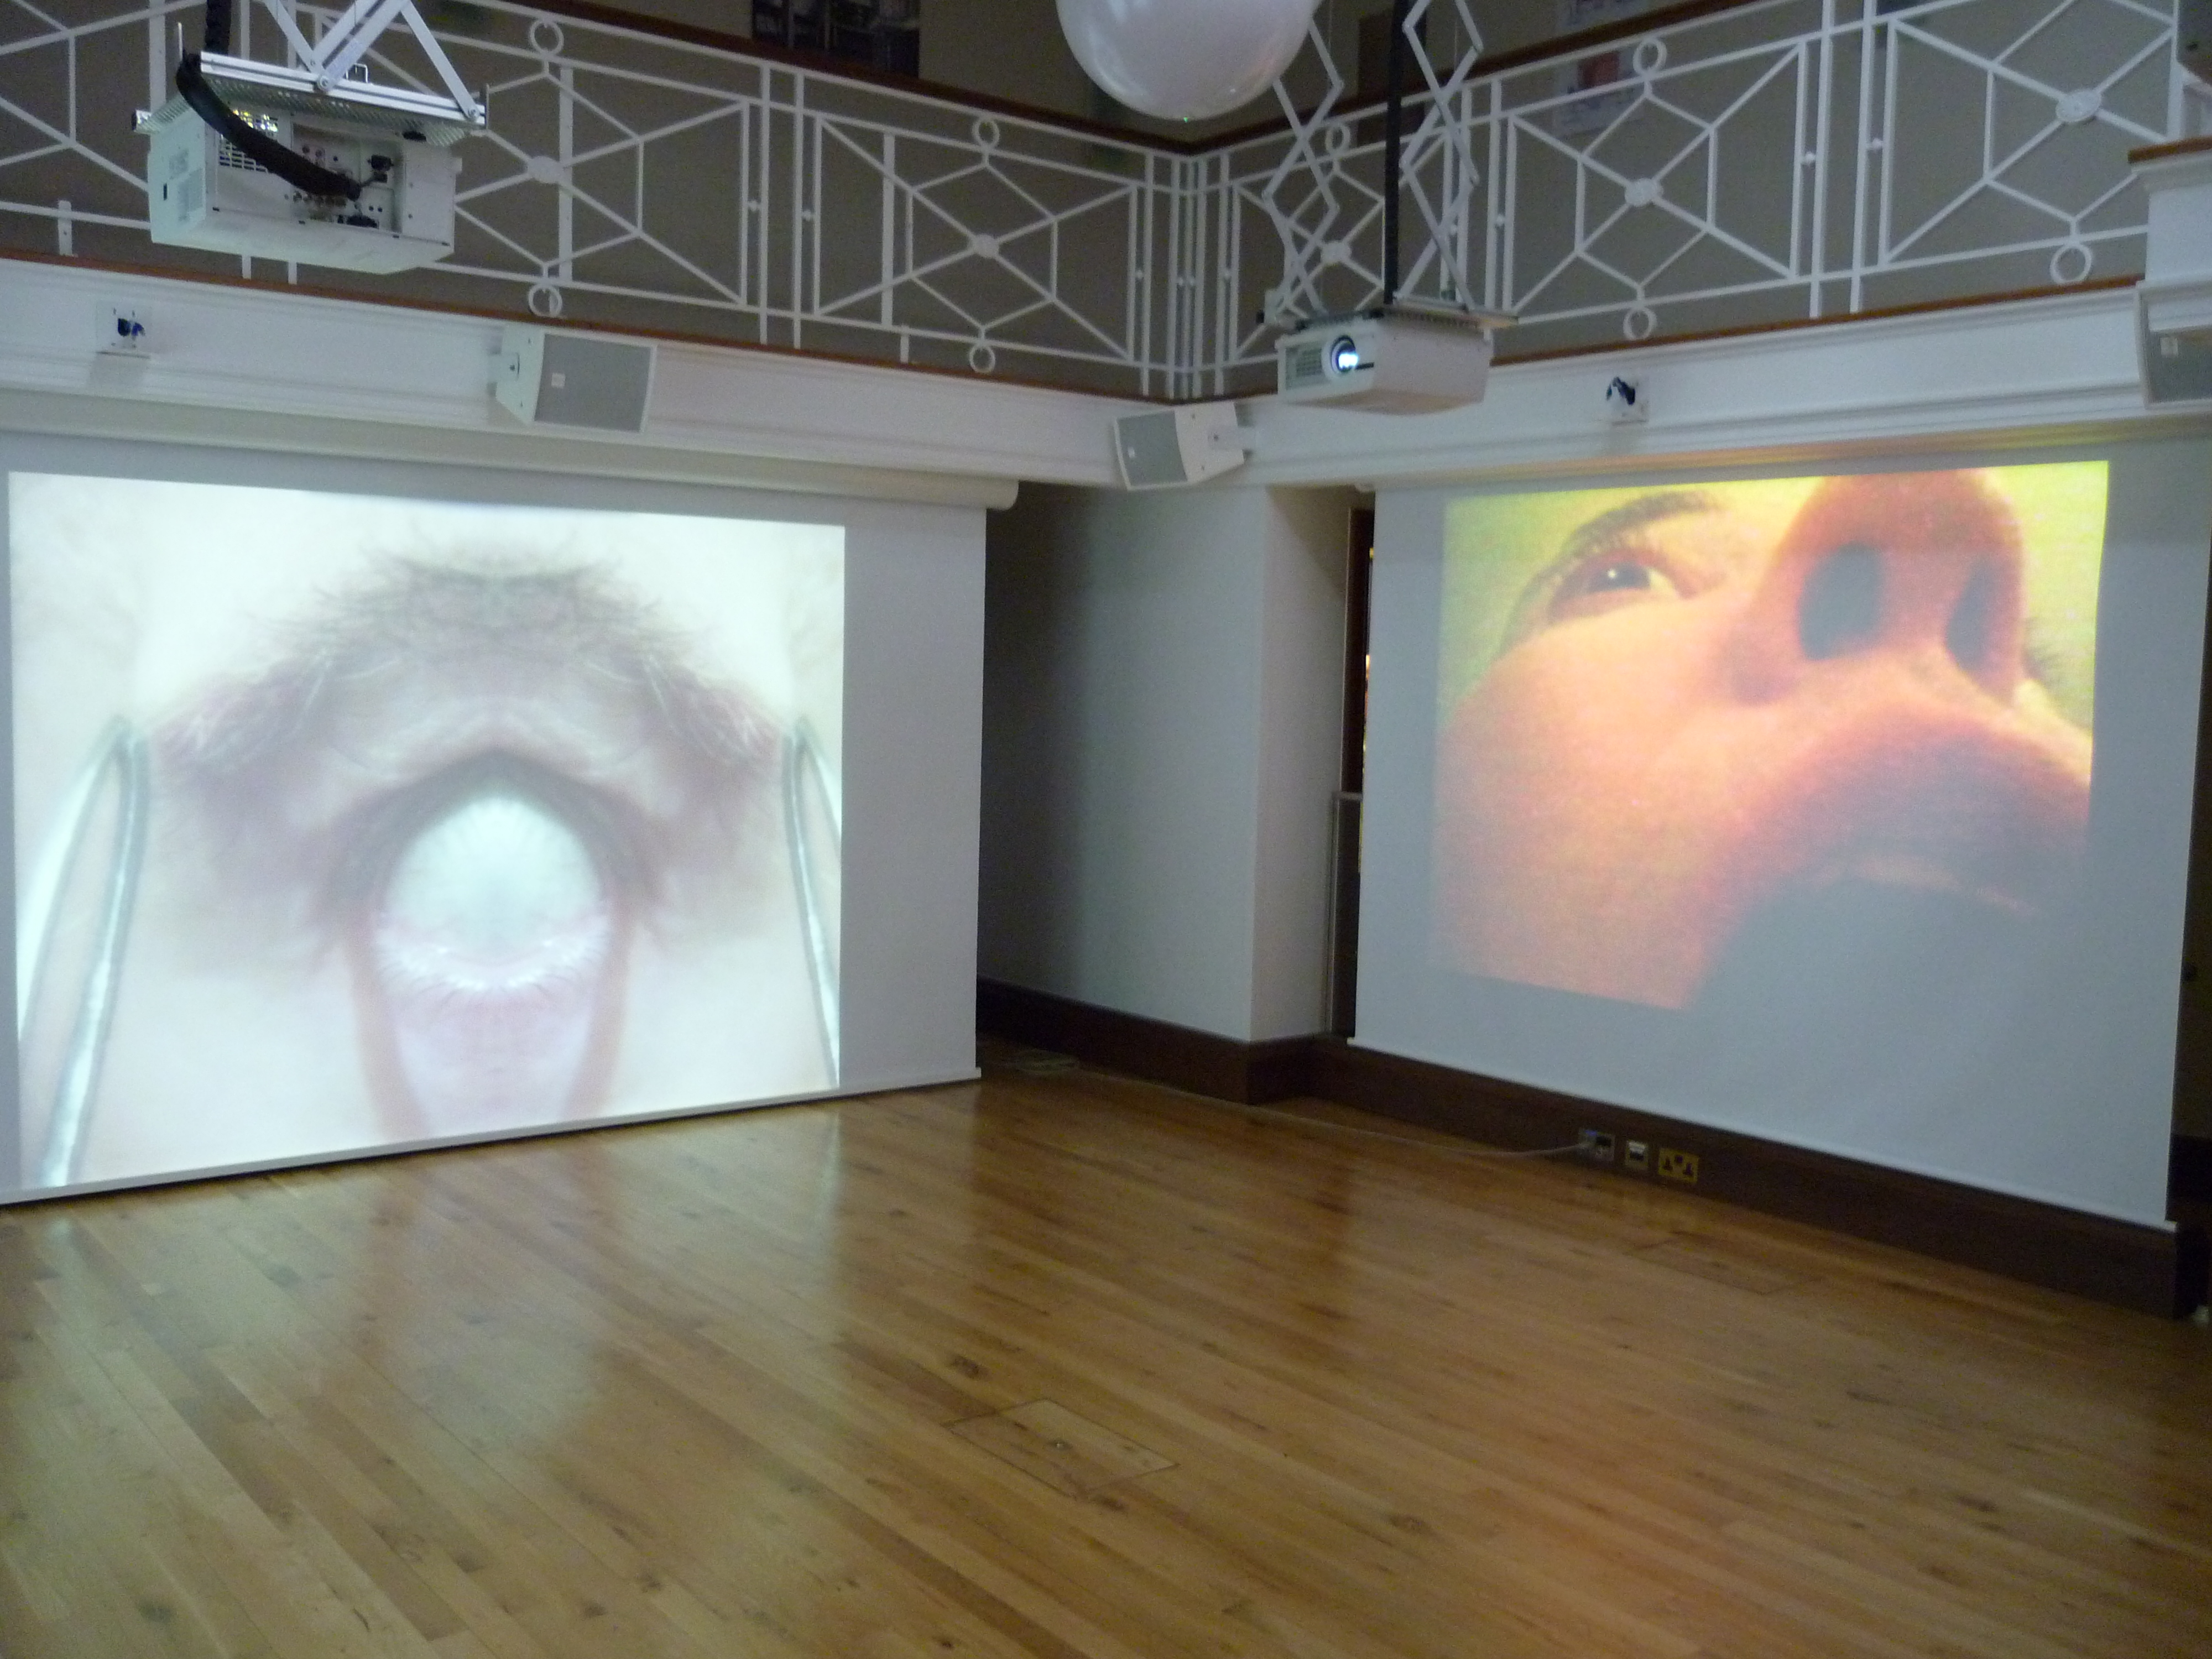 Oily Anatomies and Toxic Landscapes (Part 1) | Site, Performance ...